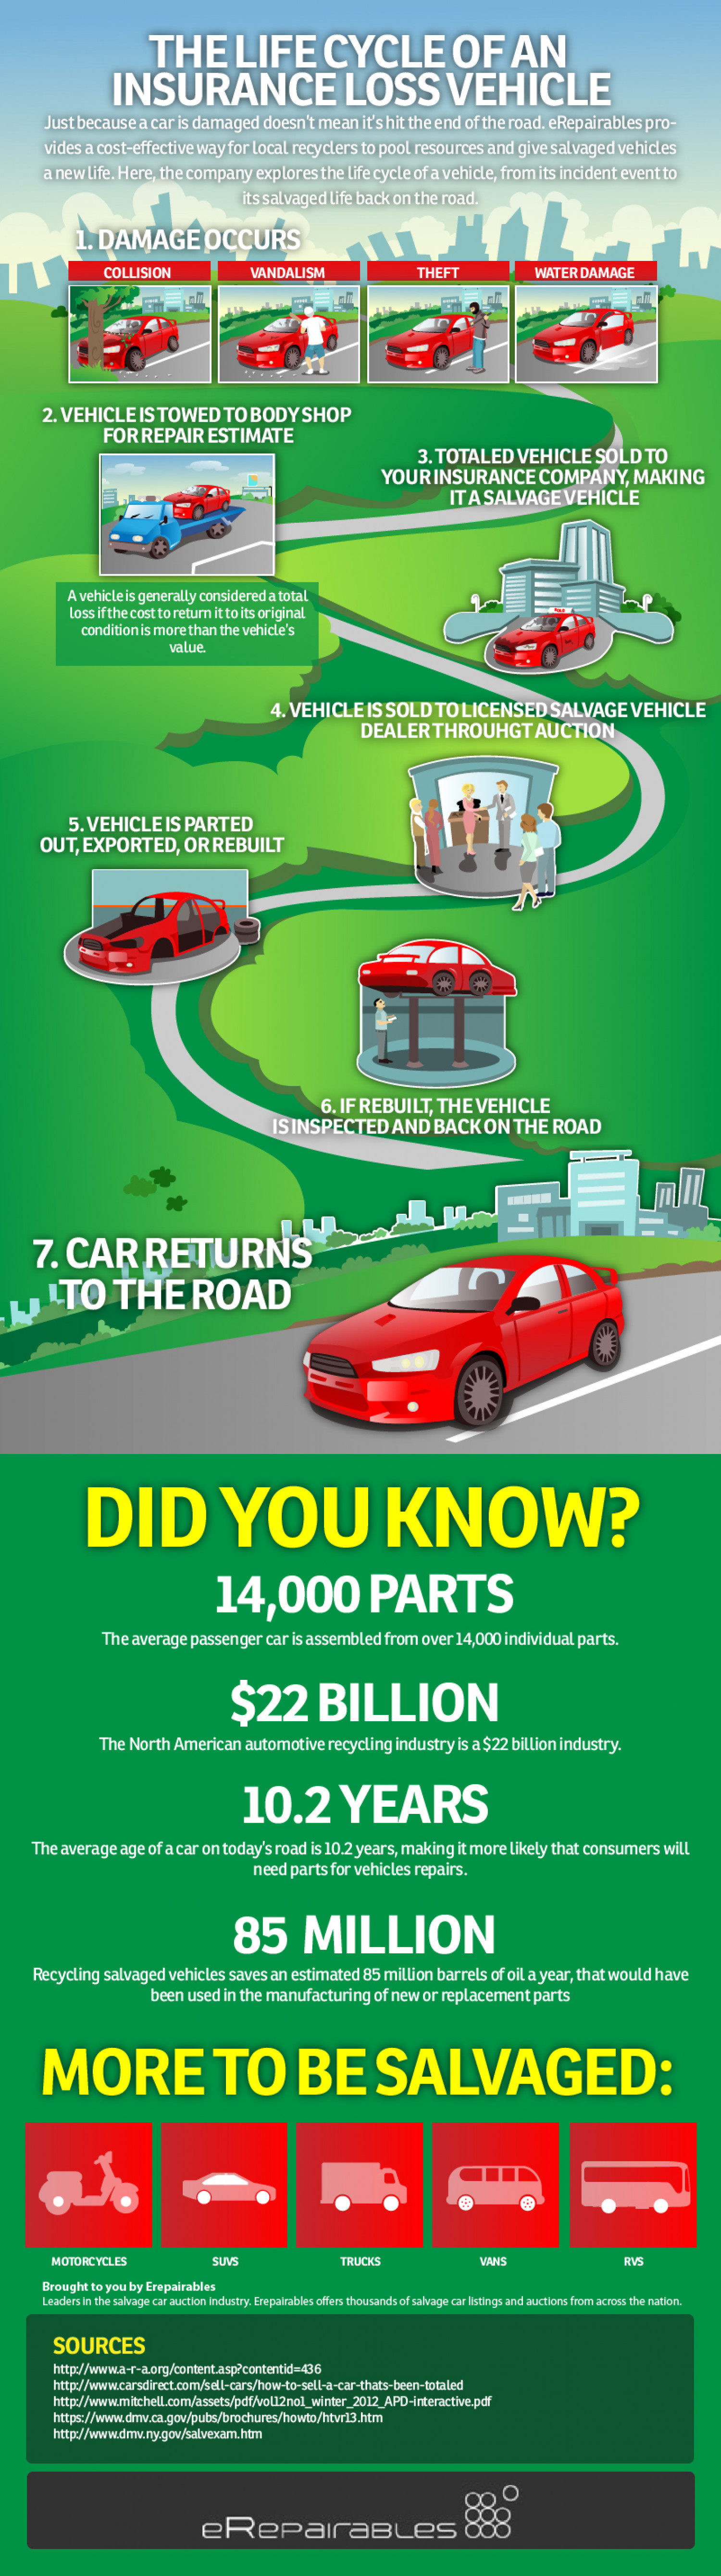 The Life Cycle Of An Insurance Loss Vehicle Infographic